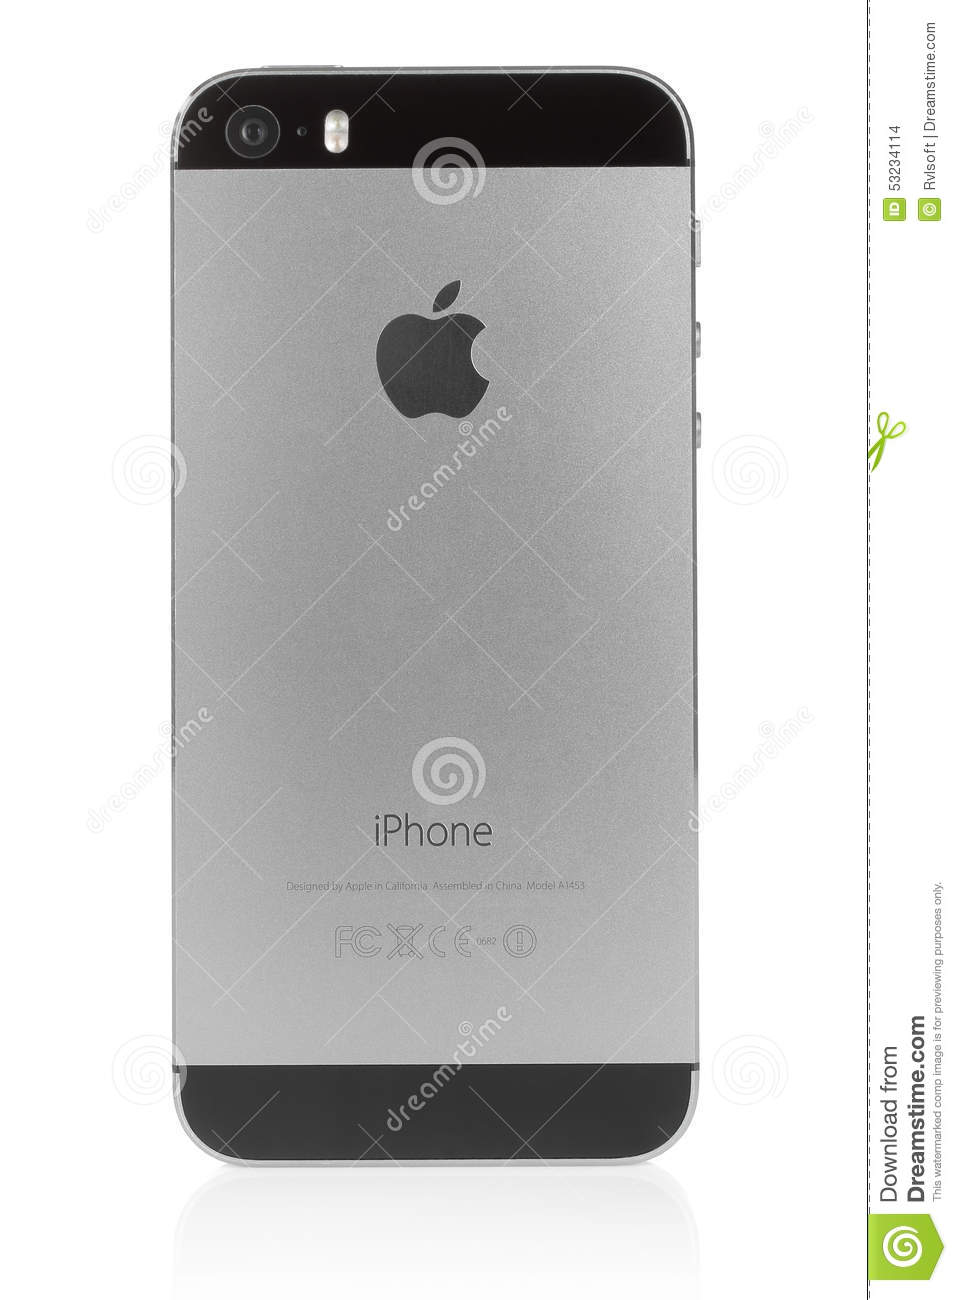 Iphone 5s space gray on white background editorial stock - Wallpaper iphone 5s space grey ...